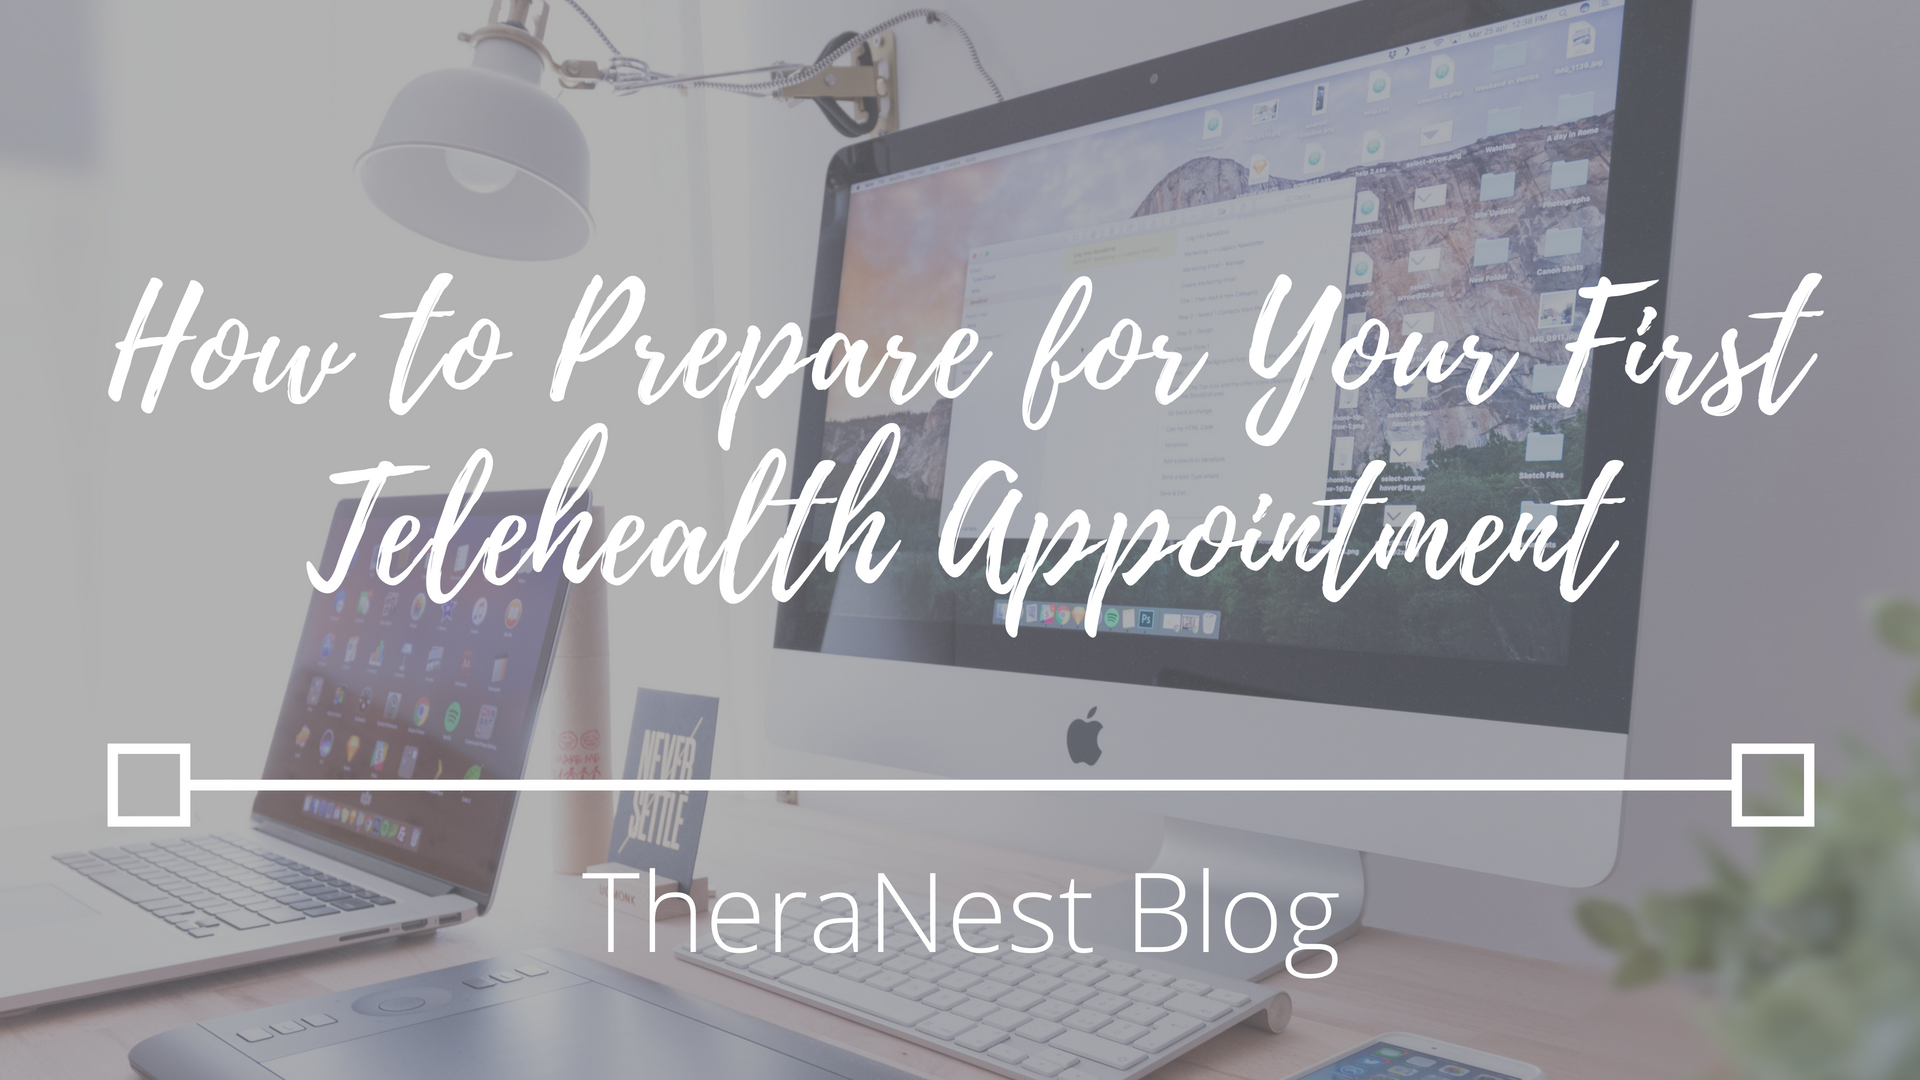 How to Prepare for Your First Telehealth Appointment - TheraNest Blog